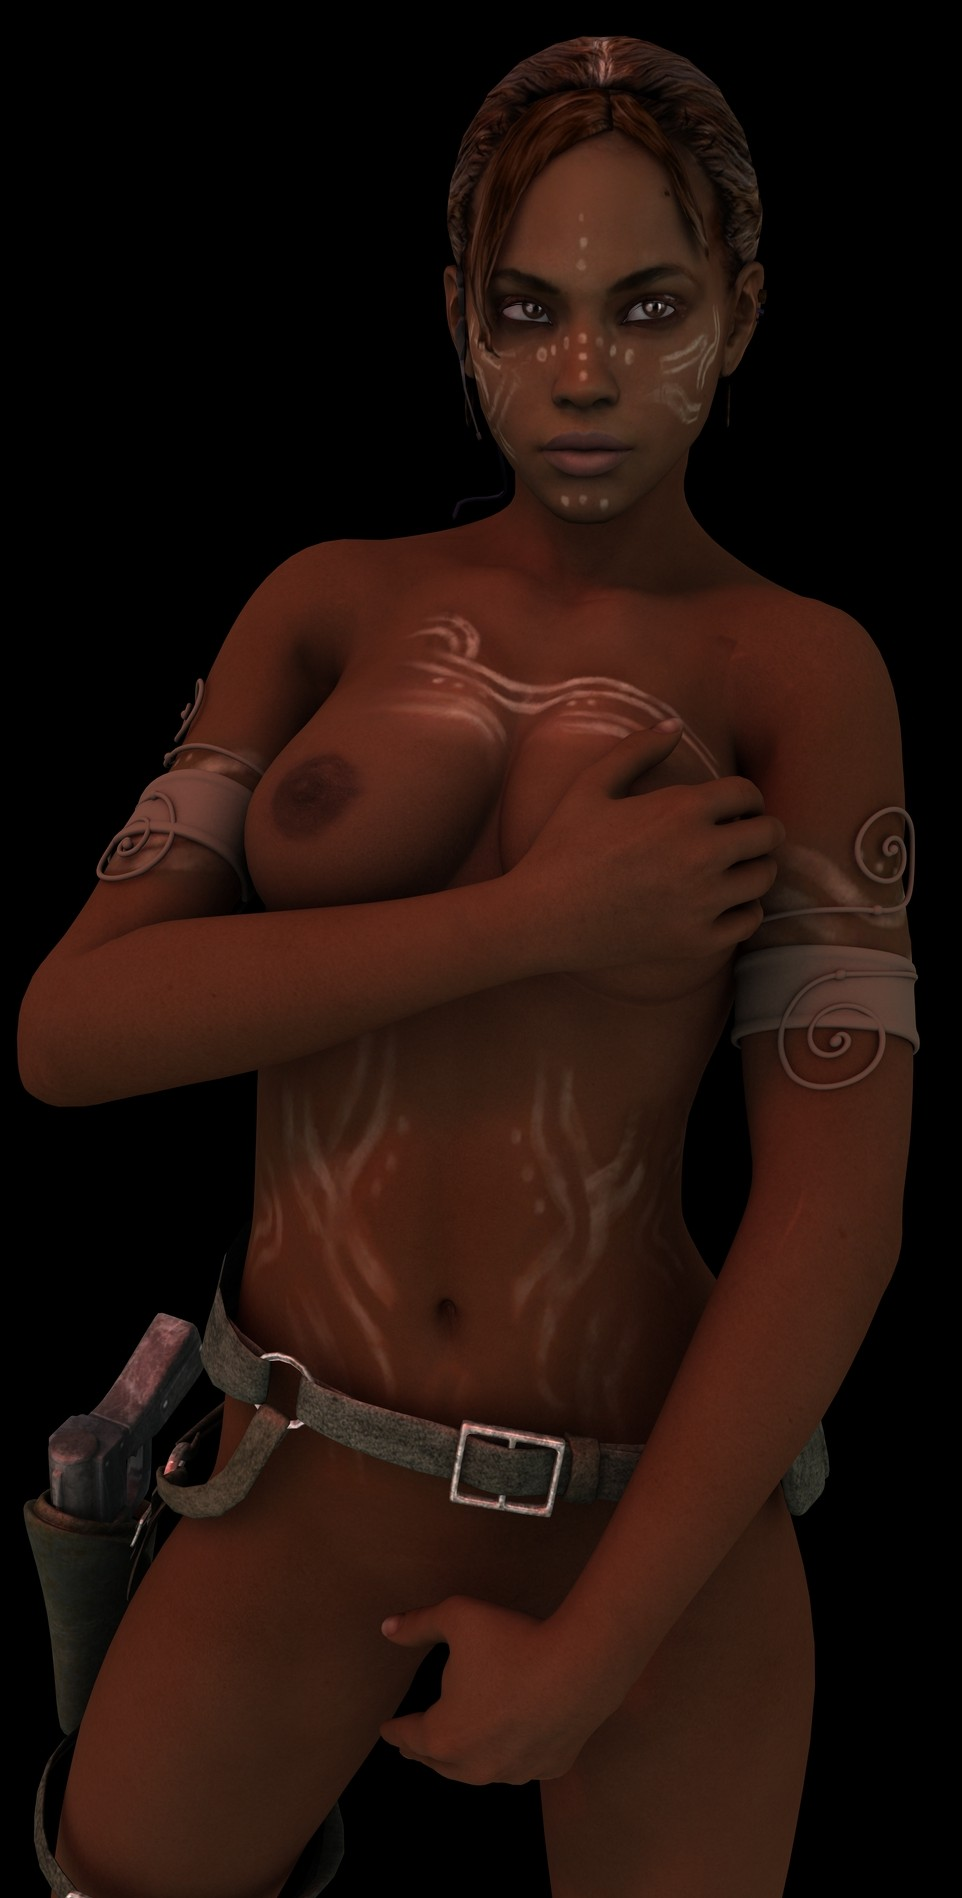 Sheva from resident evil 5 naked porno galleries